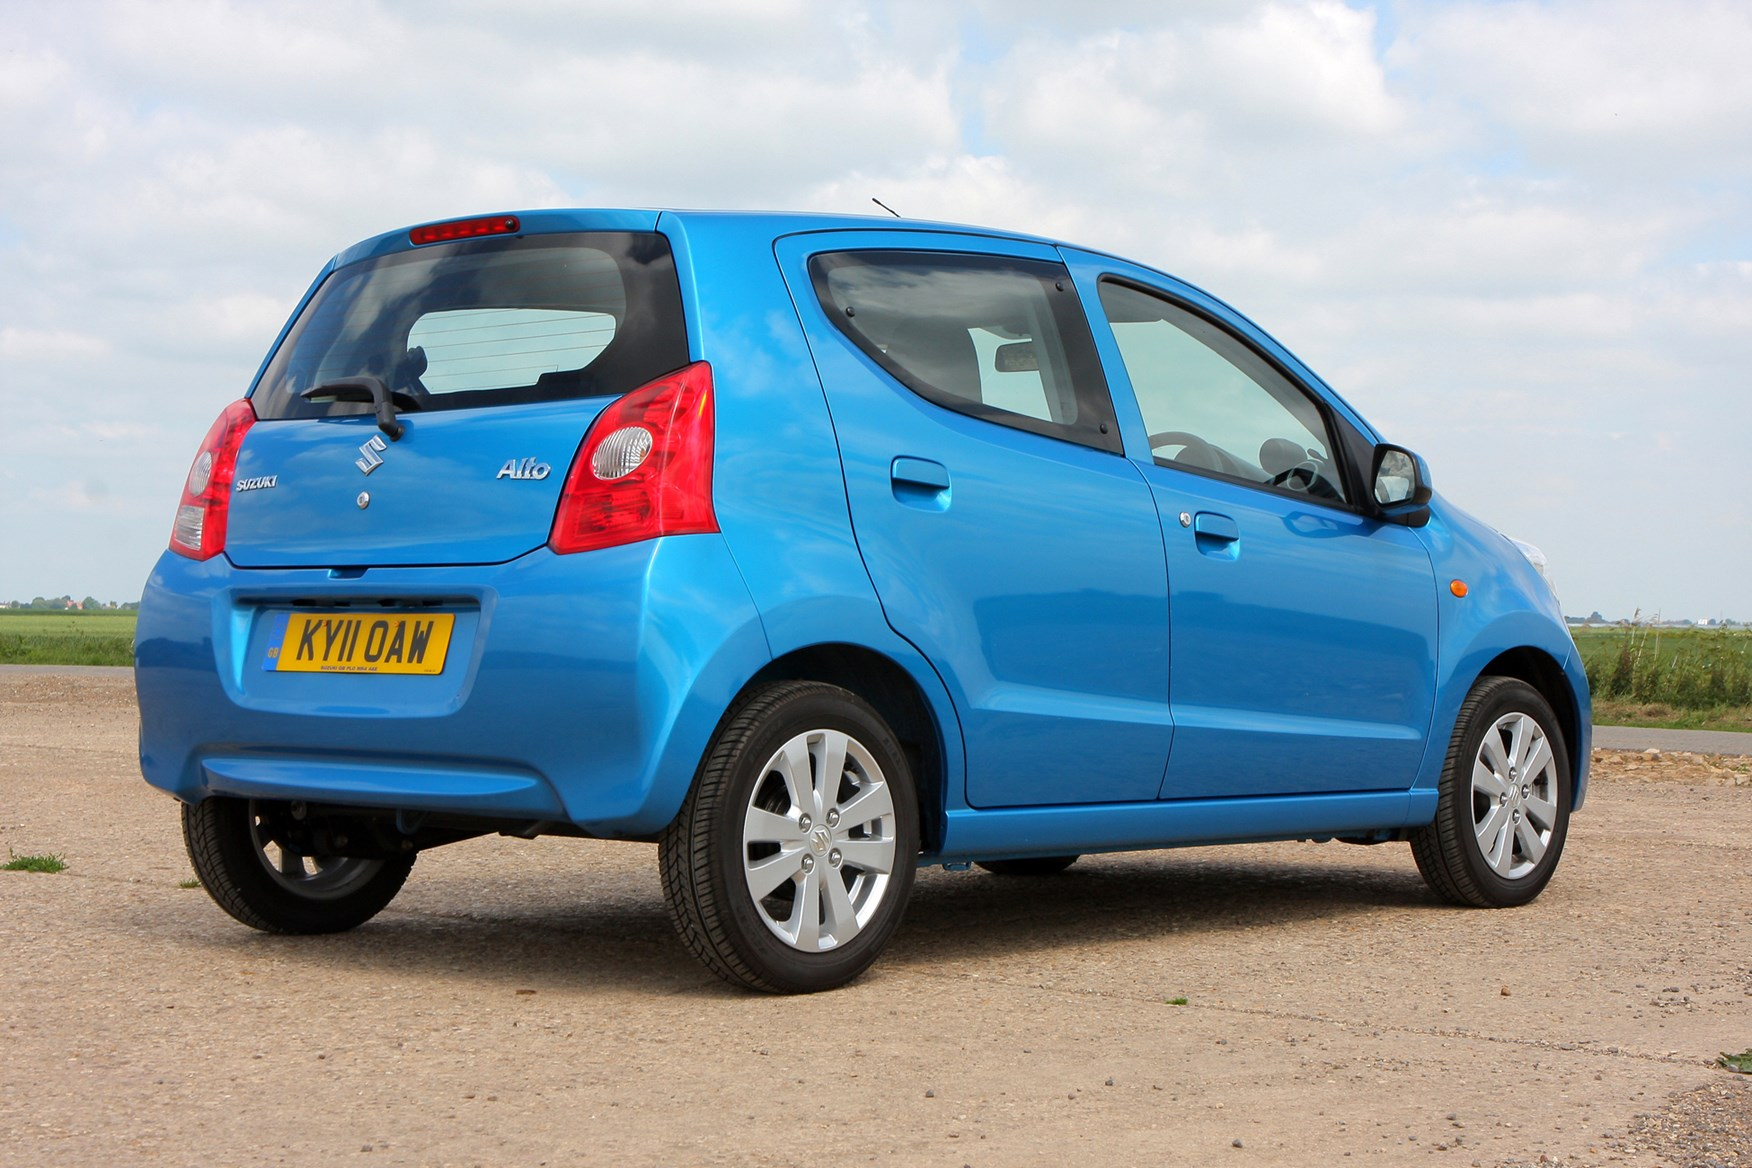 Used Cars For Sale >> Suzuki Alto Hatchback Review (2009 - 2014) | Parkers